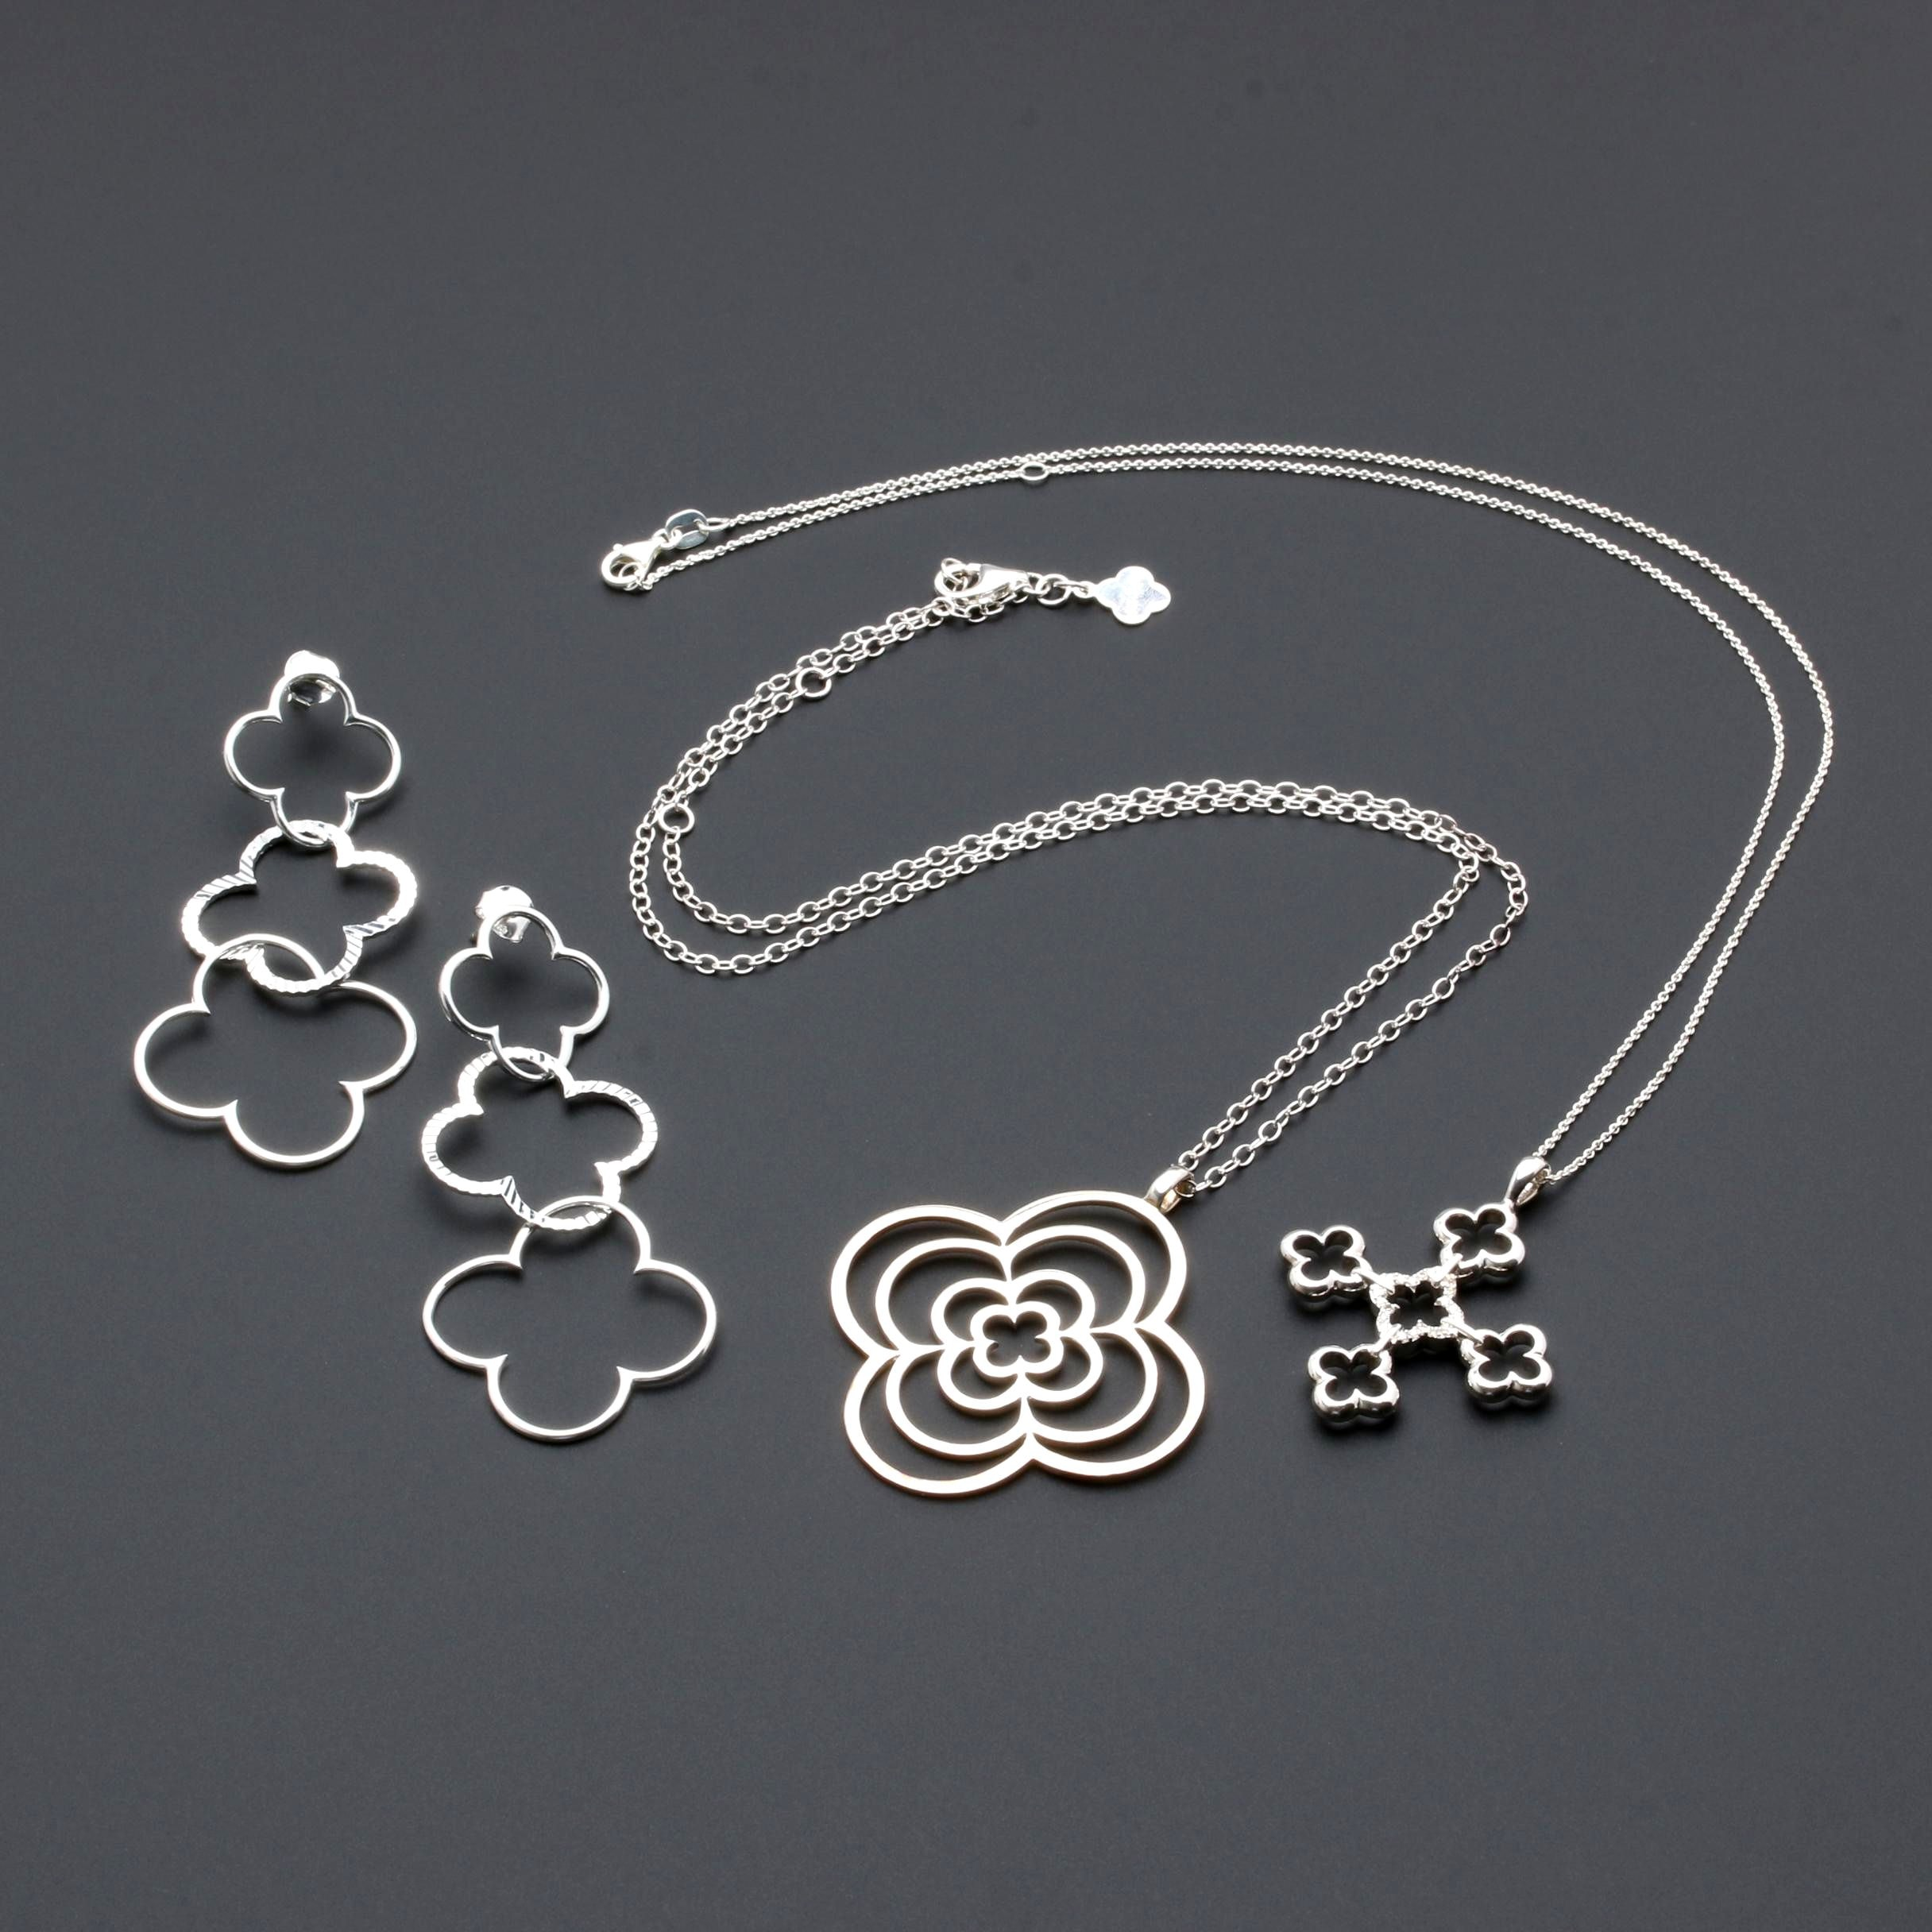 Heidi Klum Sterling Silver Necklaces and Earrings Including Diamonds